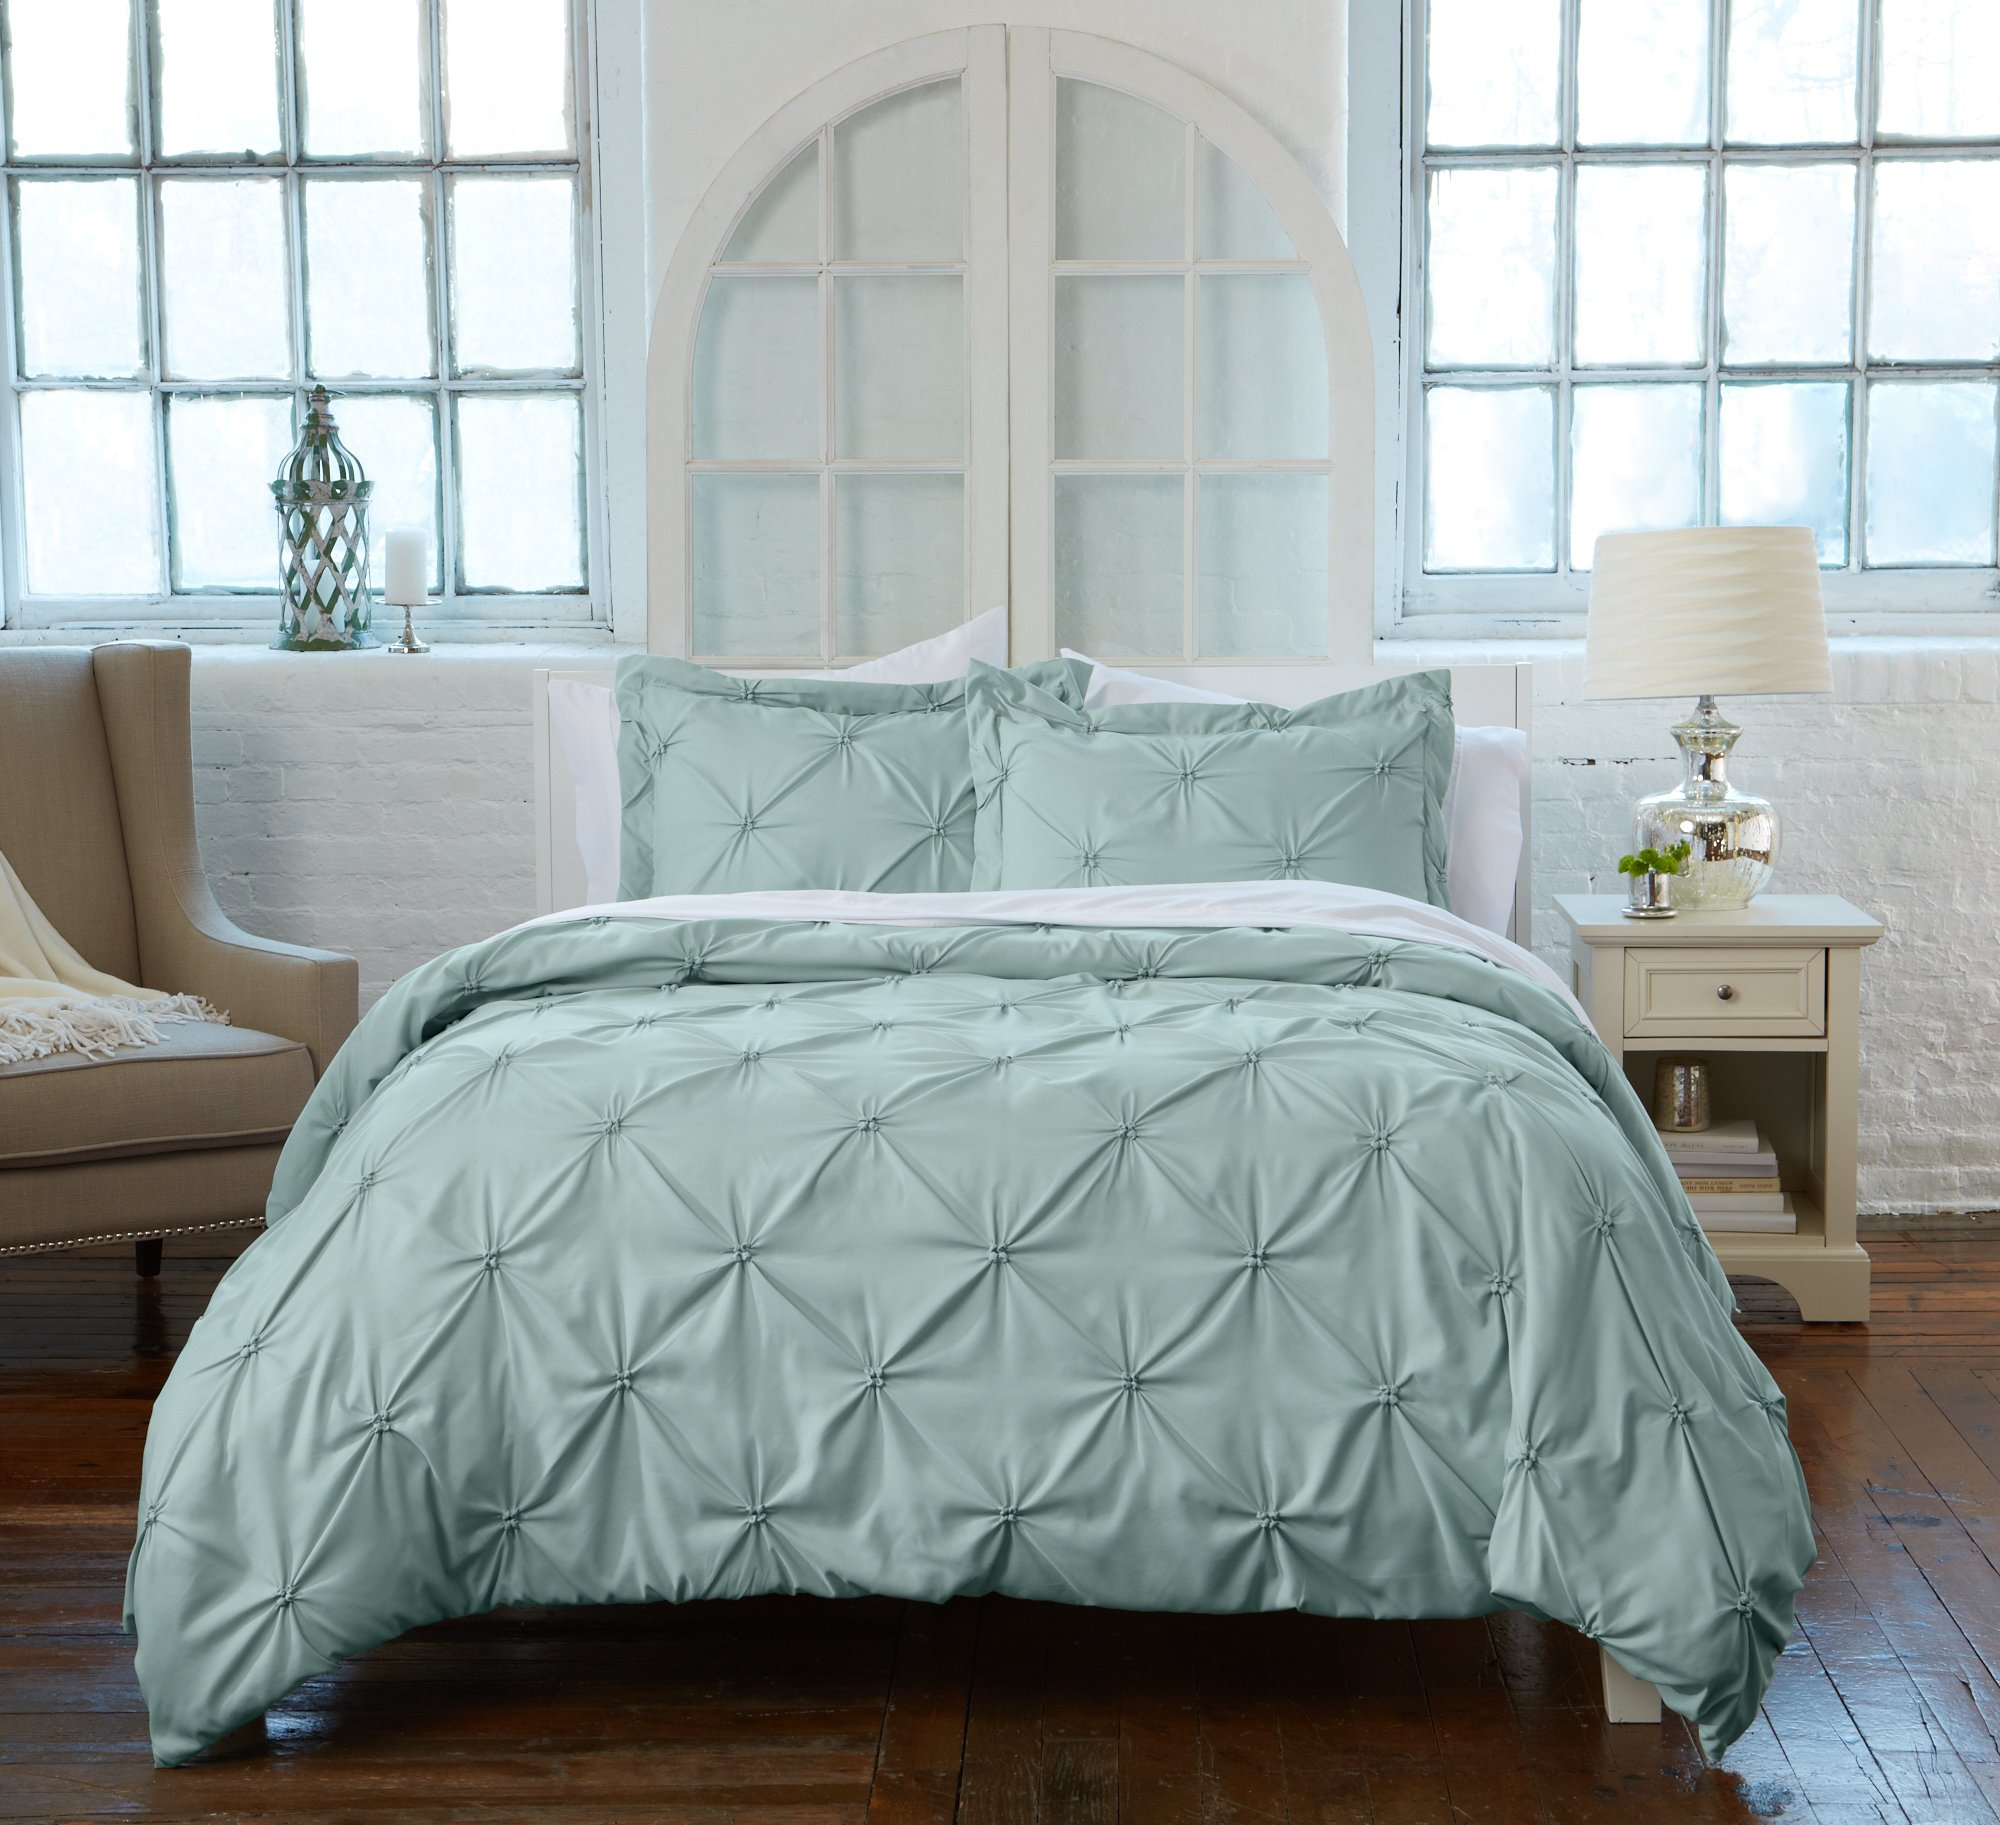 Great Bay Home Signature Pinch Pleated Pintuck Duvet Cover with Button Closure. Luxuriously Soft 100% Brushed Microfiber with Textured Pintuck Pleats and Corner Ties (Full/Queen, Ether Blue)